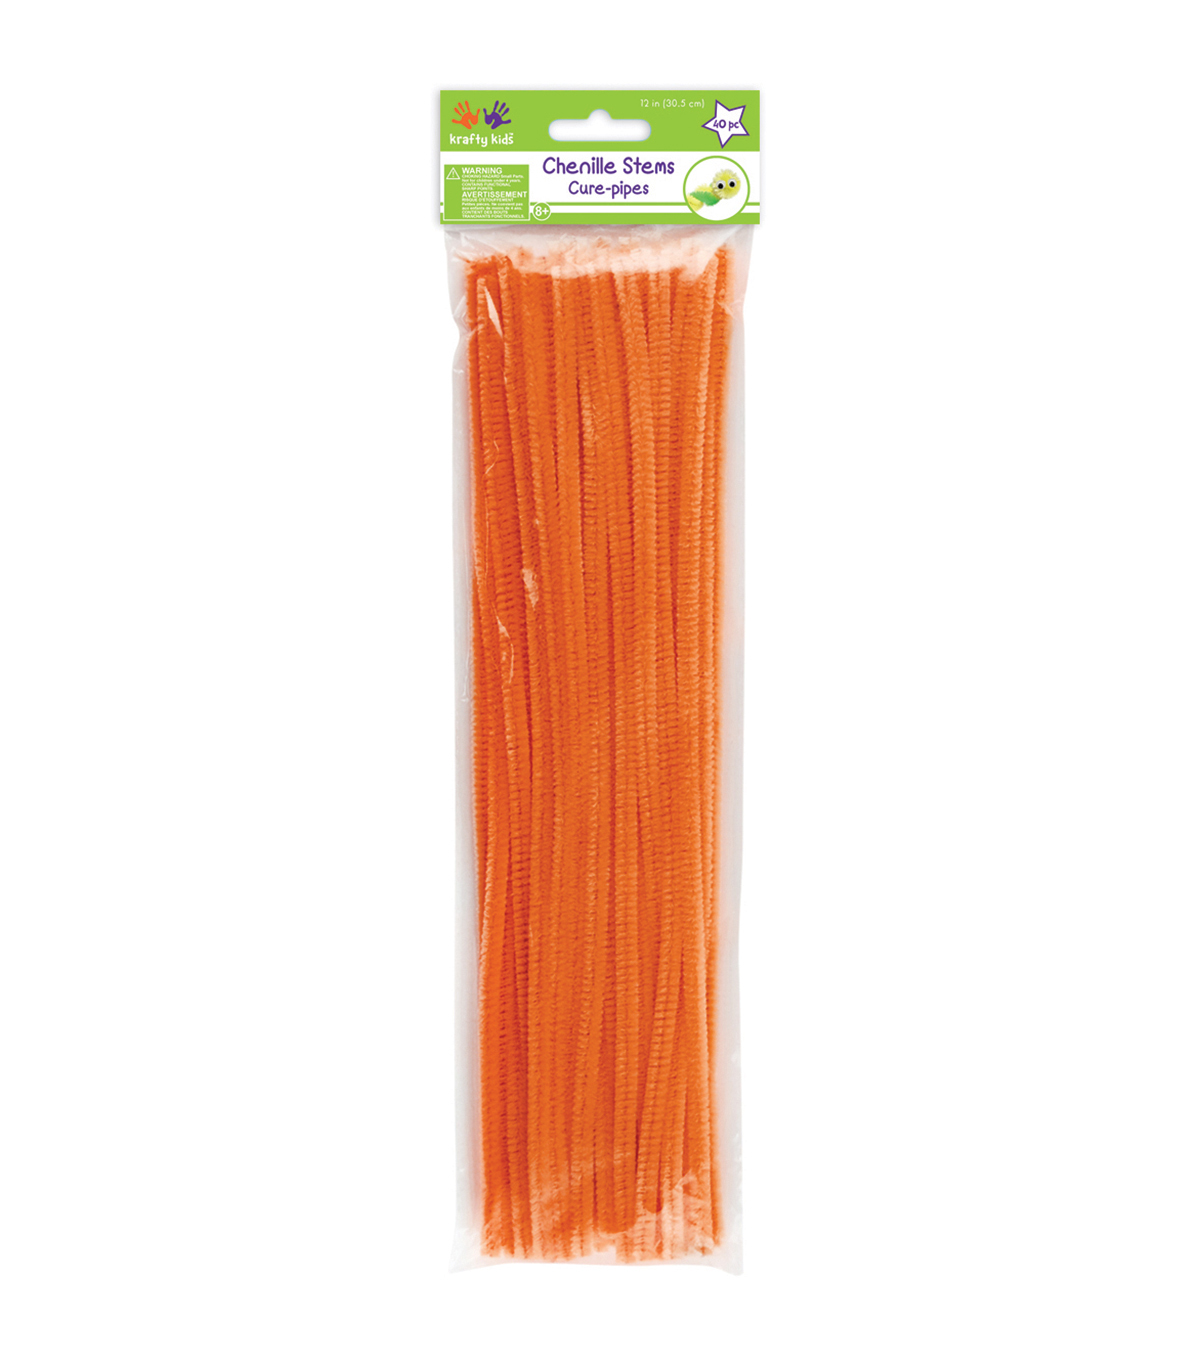 Krafty Kids Cure Pipes Chenille Stems